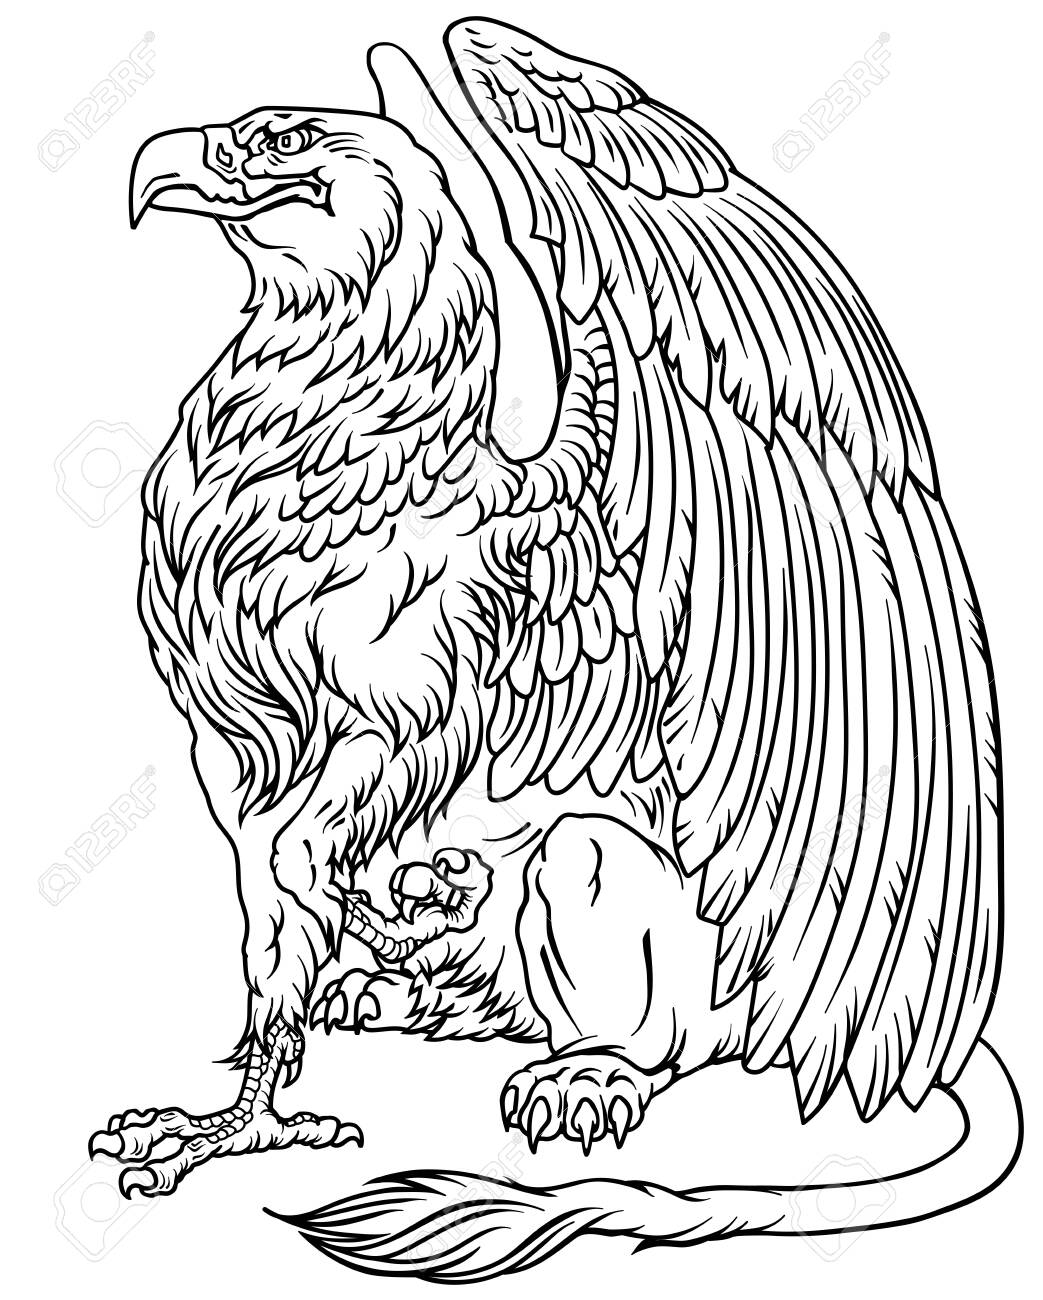 Griffin Griffon Or Gryphon A Mythical Beast Having The Body Royalty Free Cliparts Vectors And Stock Illustration Image 150171023 Start the drawing of the lion by first outlining the basic shape of it's body and head. griffin griffon or gryphon a mythical beast having the body